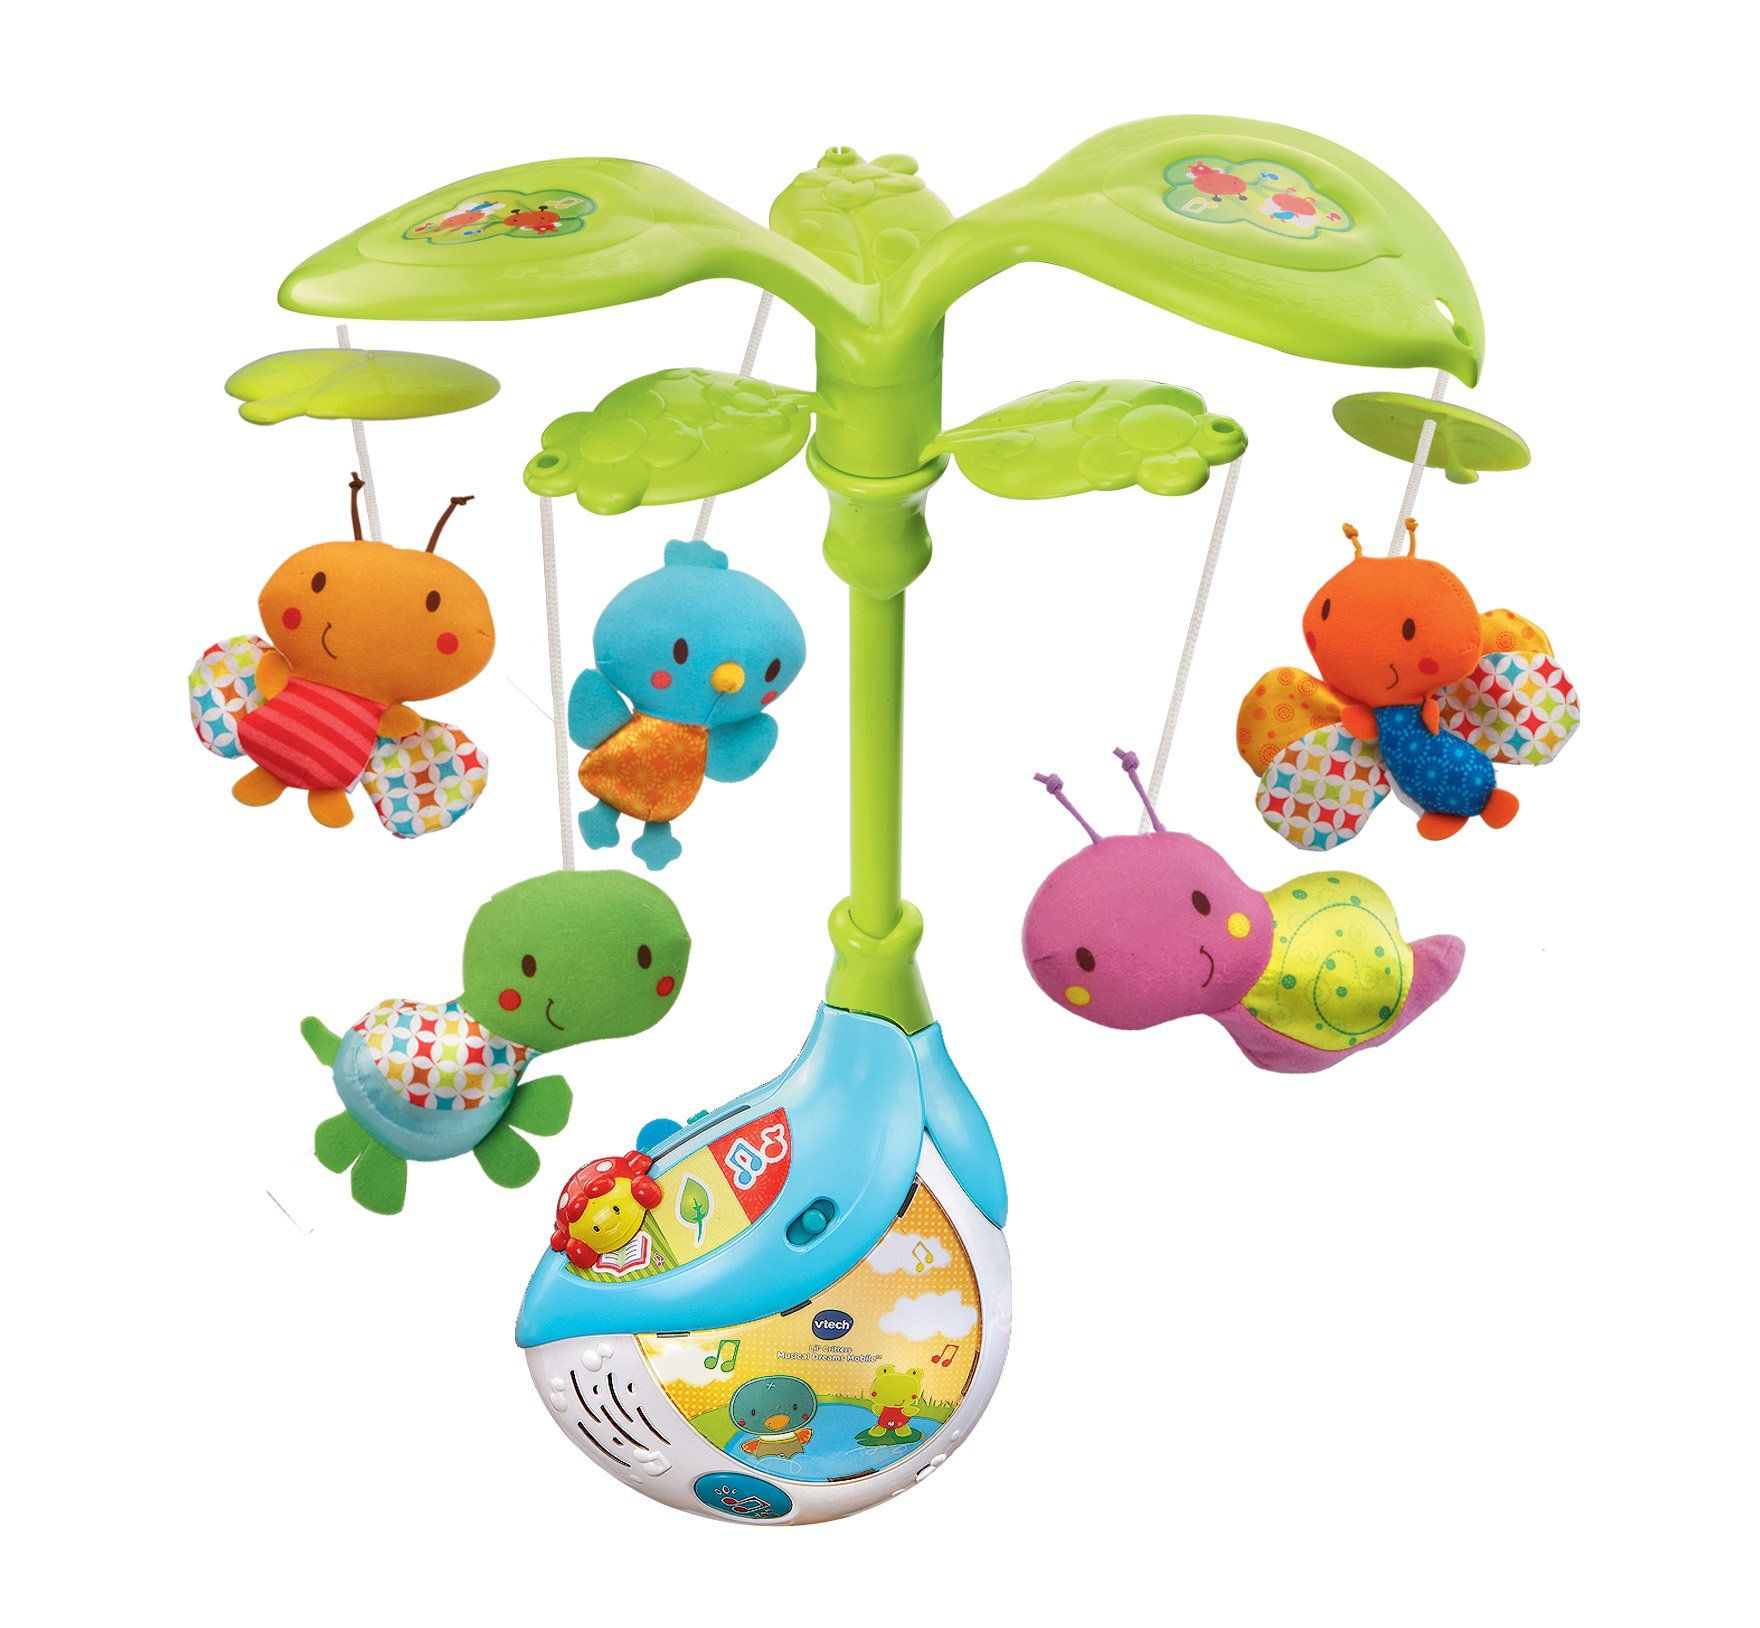 Crib mobile babies r us - Vtech Baby Lil Critters Musical Dreams Mobile Calm Your Child With This Relaxing Vtech